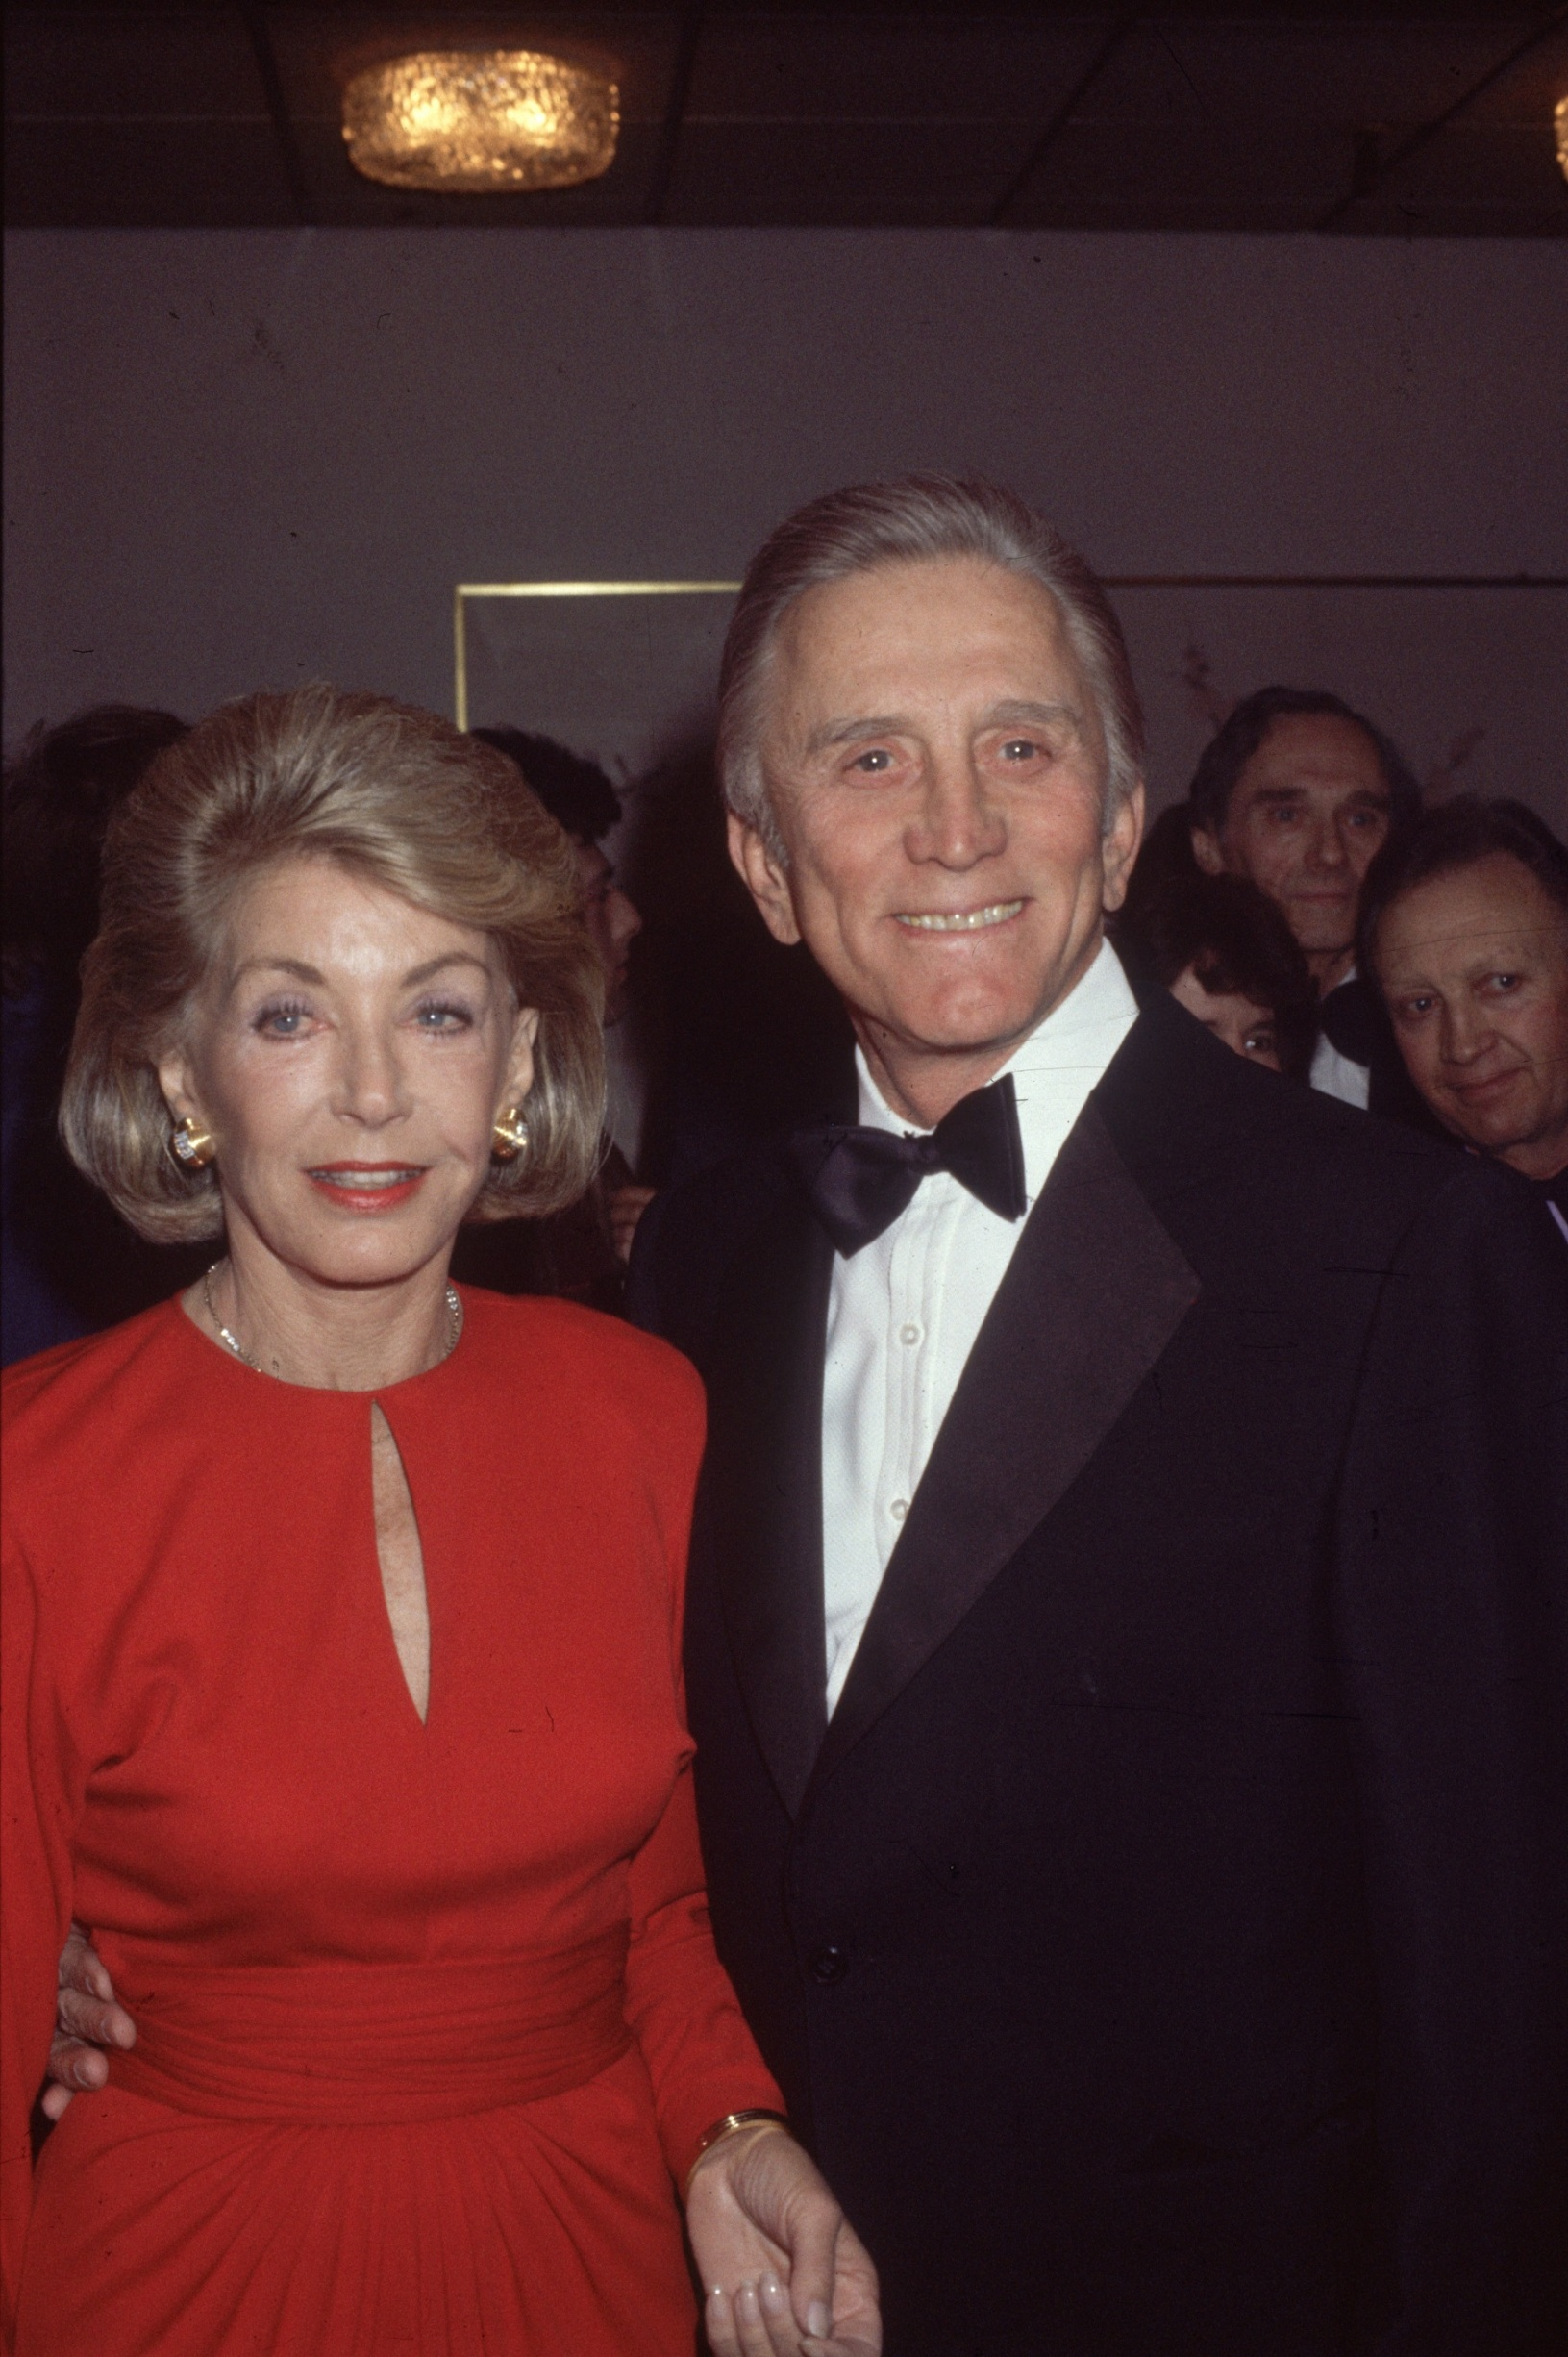 1985:  Film star Kirk Douglas with his wife Anne at the BAFTA Awards, Grosvenor House Hotel, London.  (Photo by Hulton Archive/Getty Images)